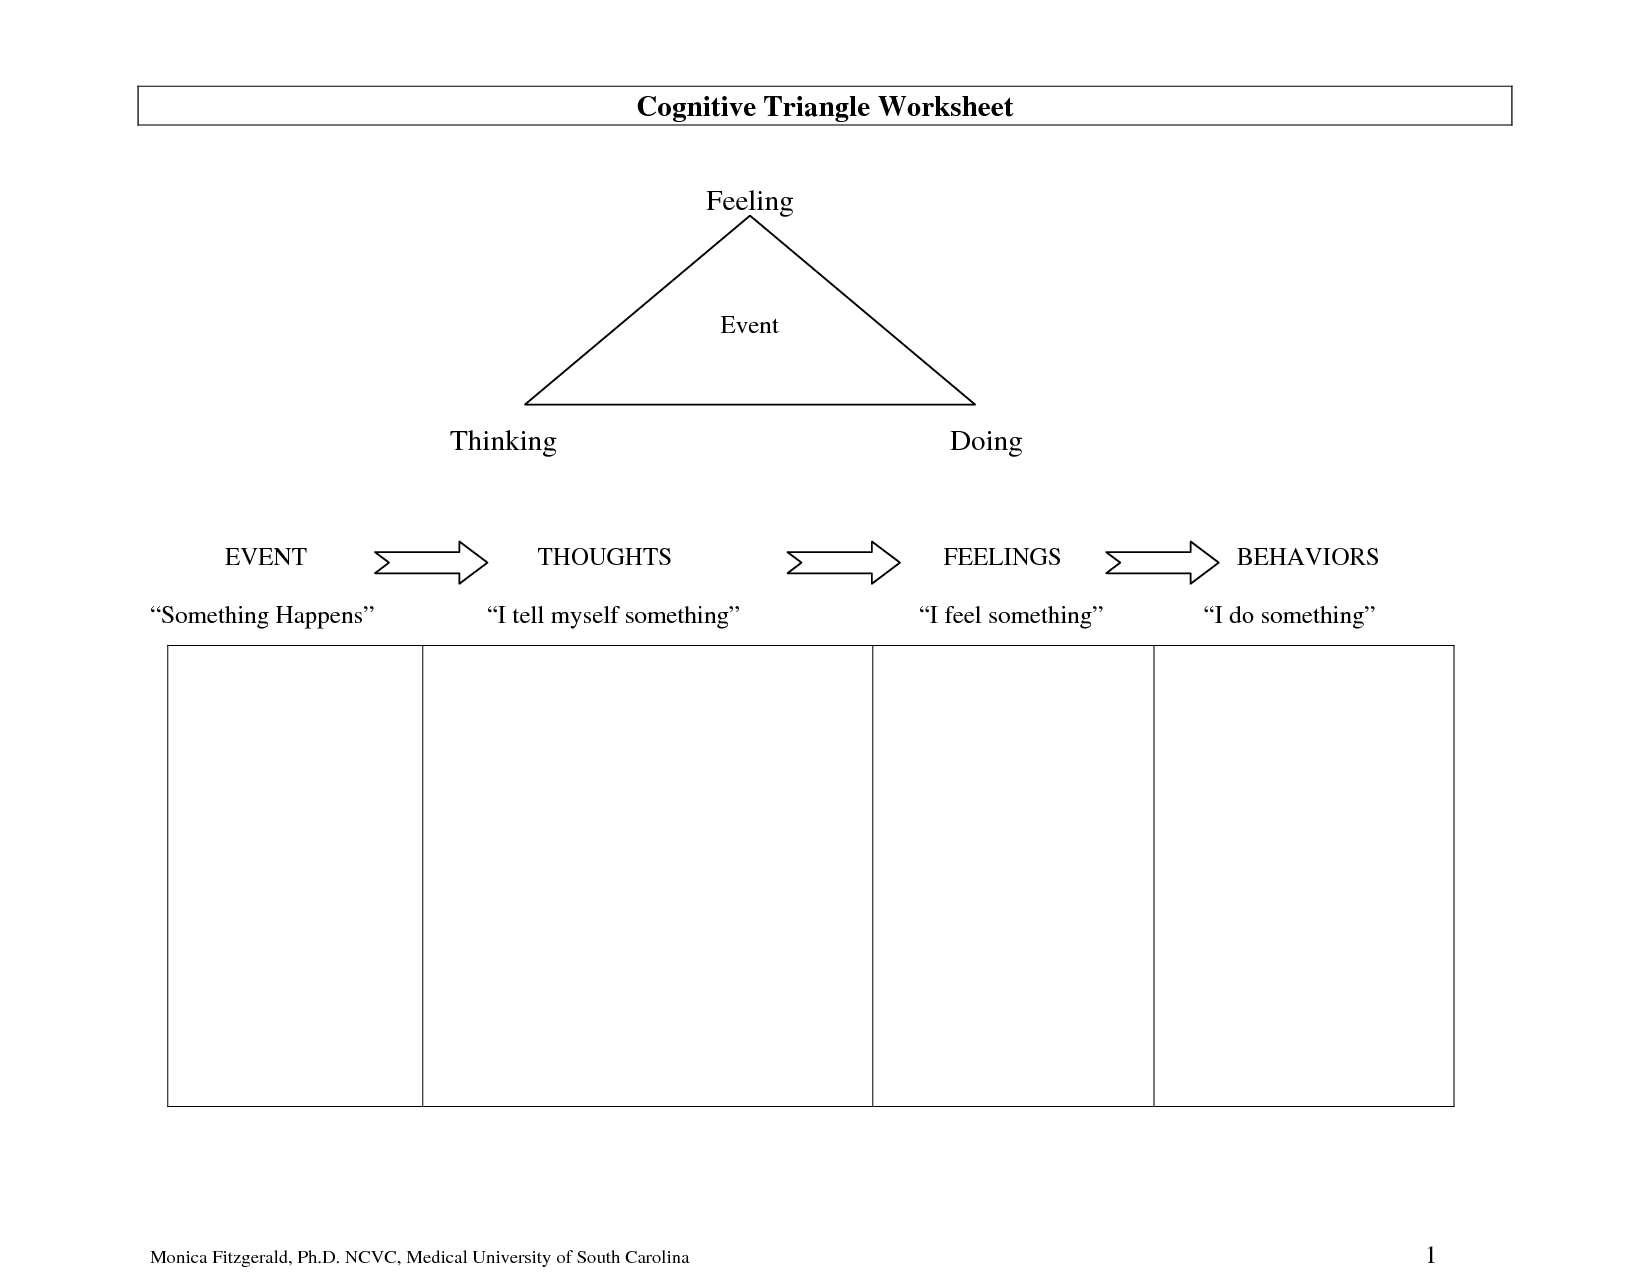 18 Best Images Of Anxiety Cbt Worksheets